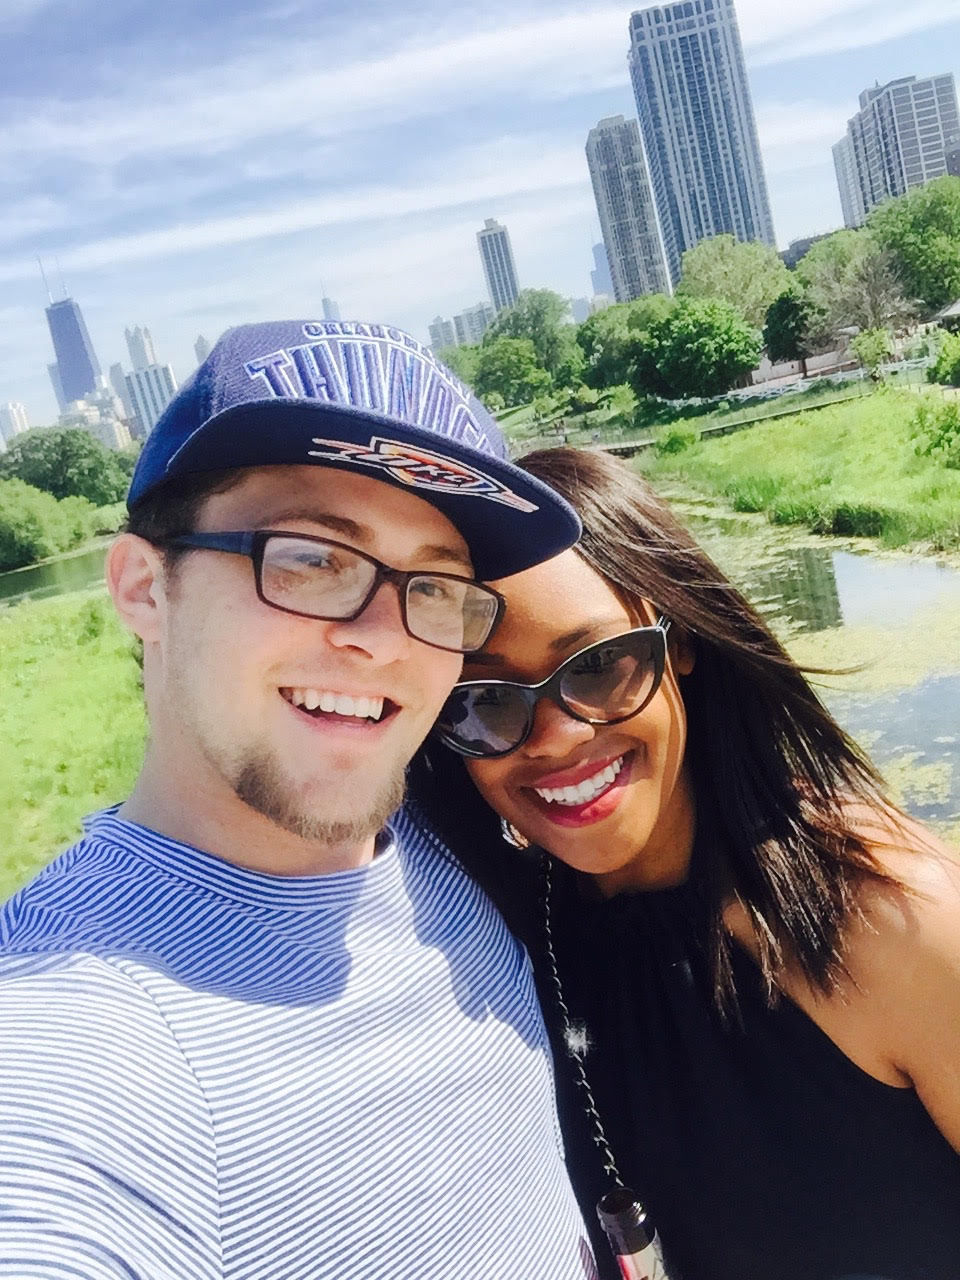 Find Love Online - InterracialDating.com Has 1000's Of Hot Singles To Choose From.